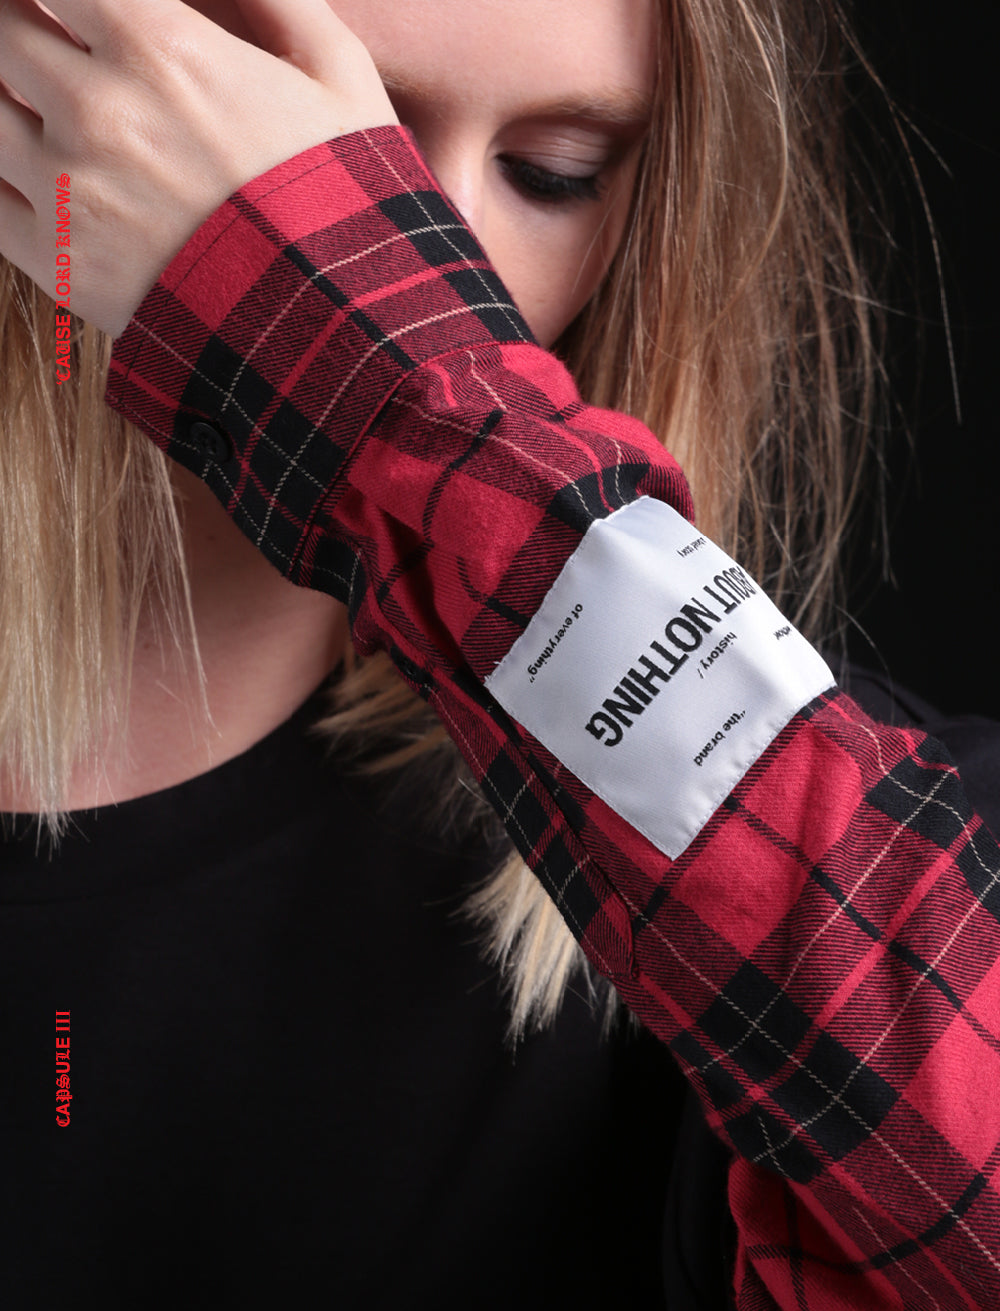 OVERSIZED LONG SLEEVE // FRONT POCKET AND DOUBLE LAYERED FLANNEL SLEEVE [RED/BLACK]